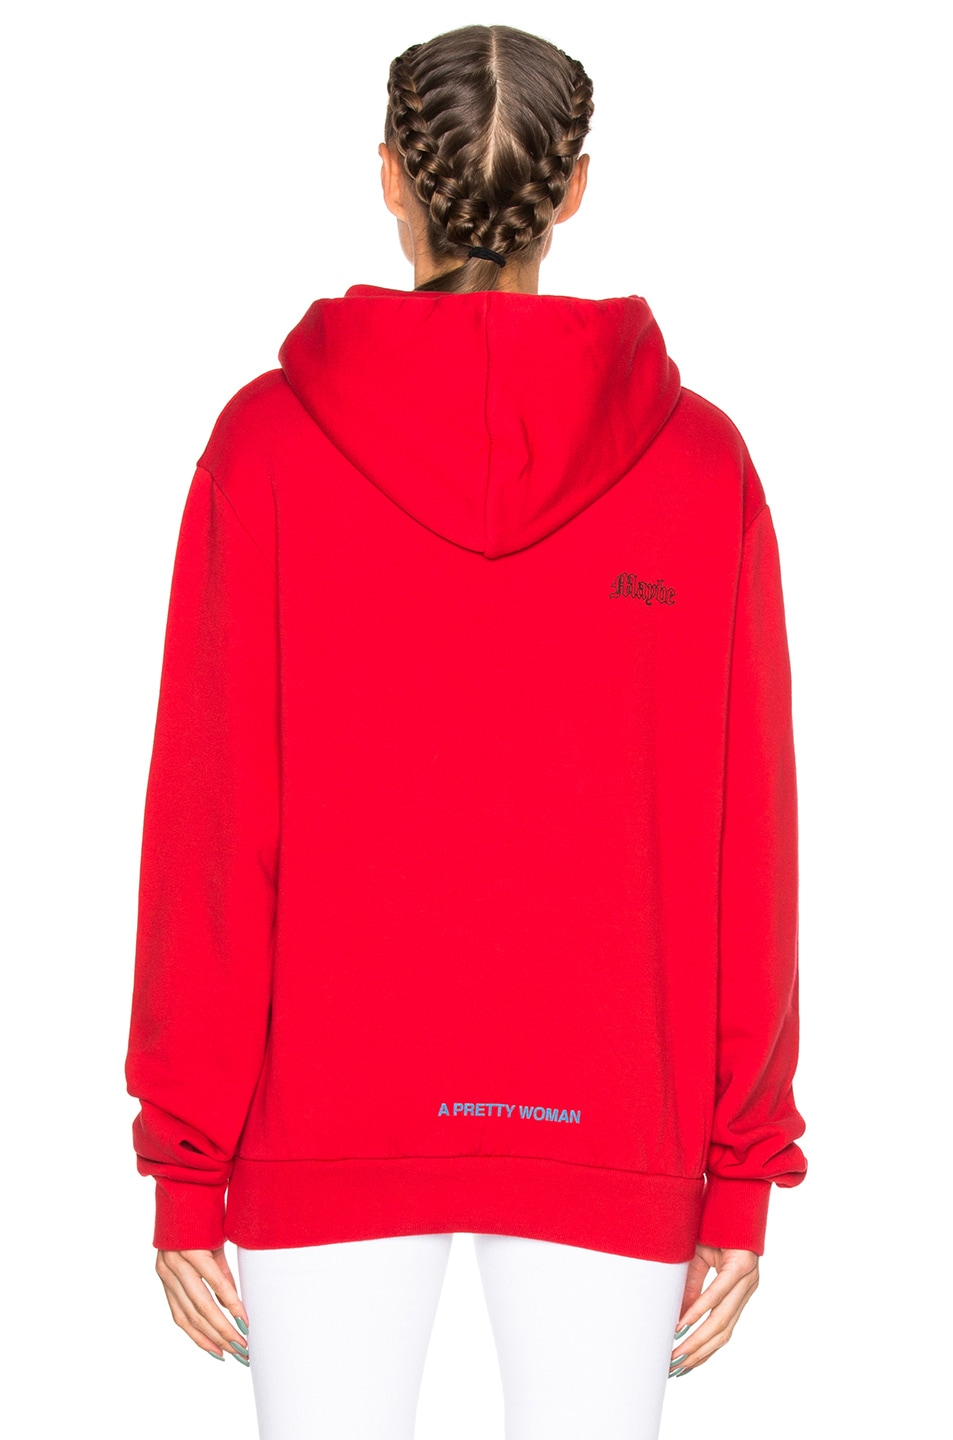 27cbeee7b754 Image 4 of OFF-WHITE Chateau Hoodie in Red   Black